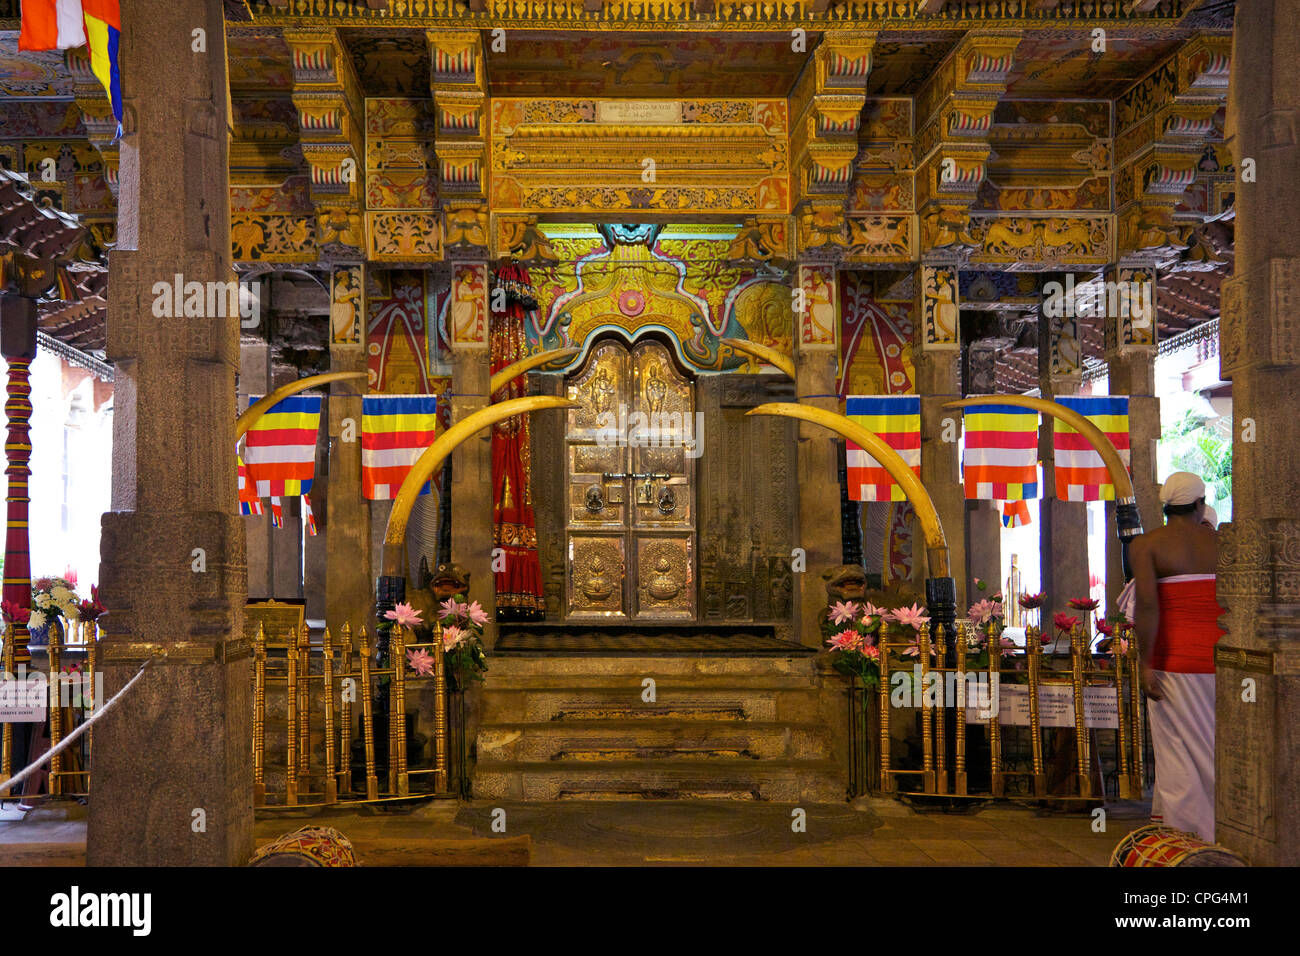 Tooth Sanctuary, Temple of the Tooth Relic or Sri Dalada Maligawa, Kandy Sri Lanka - Stock Image